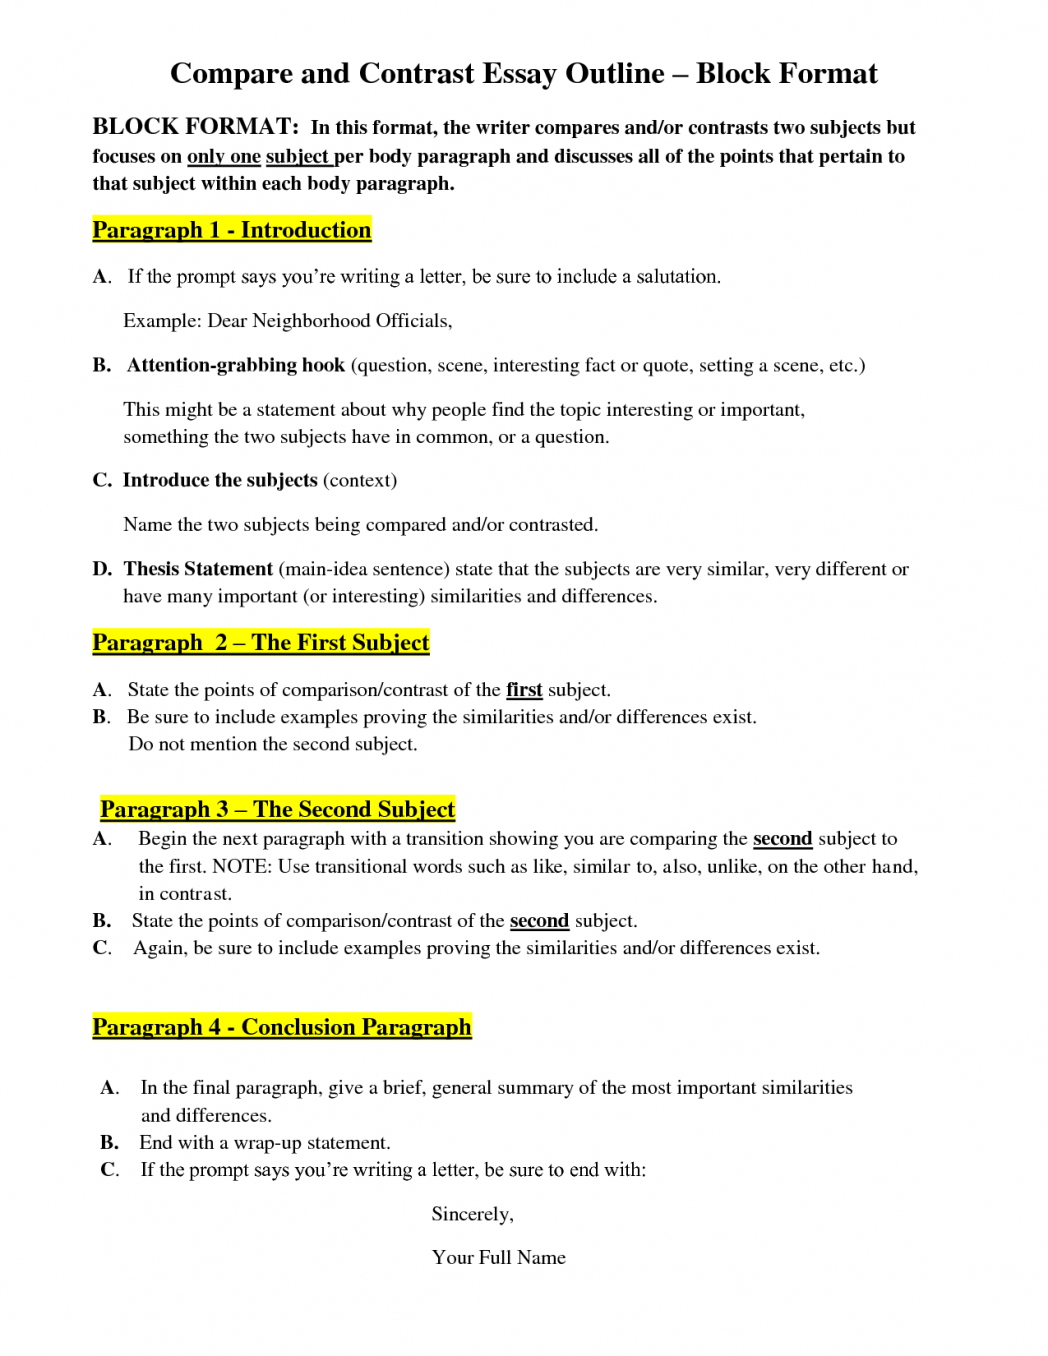 015 Compare Contrast Essay Example And Introduction How To Write College Level Outline Block Fascinating Topics Graphic Organizer Julius Caesar Answers High School Full